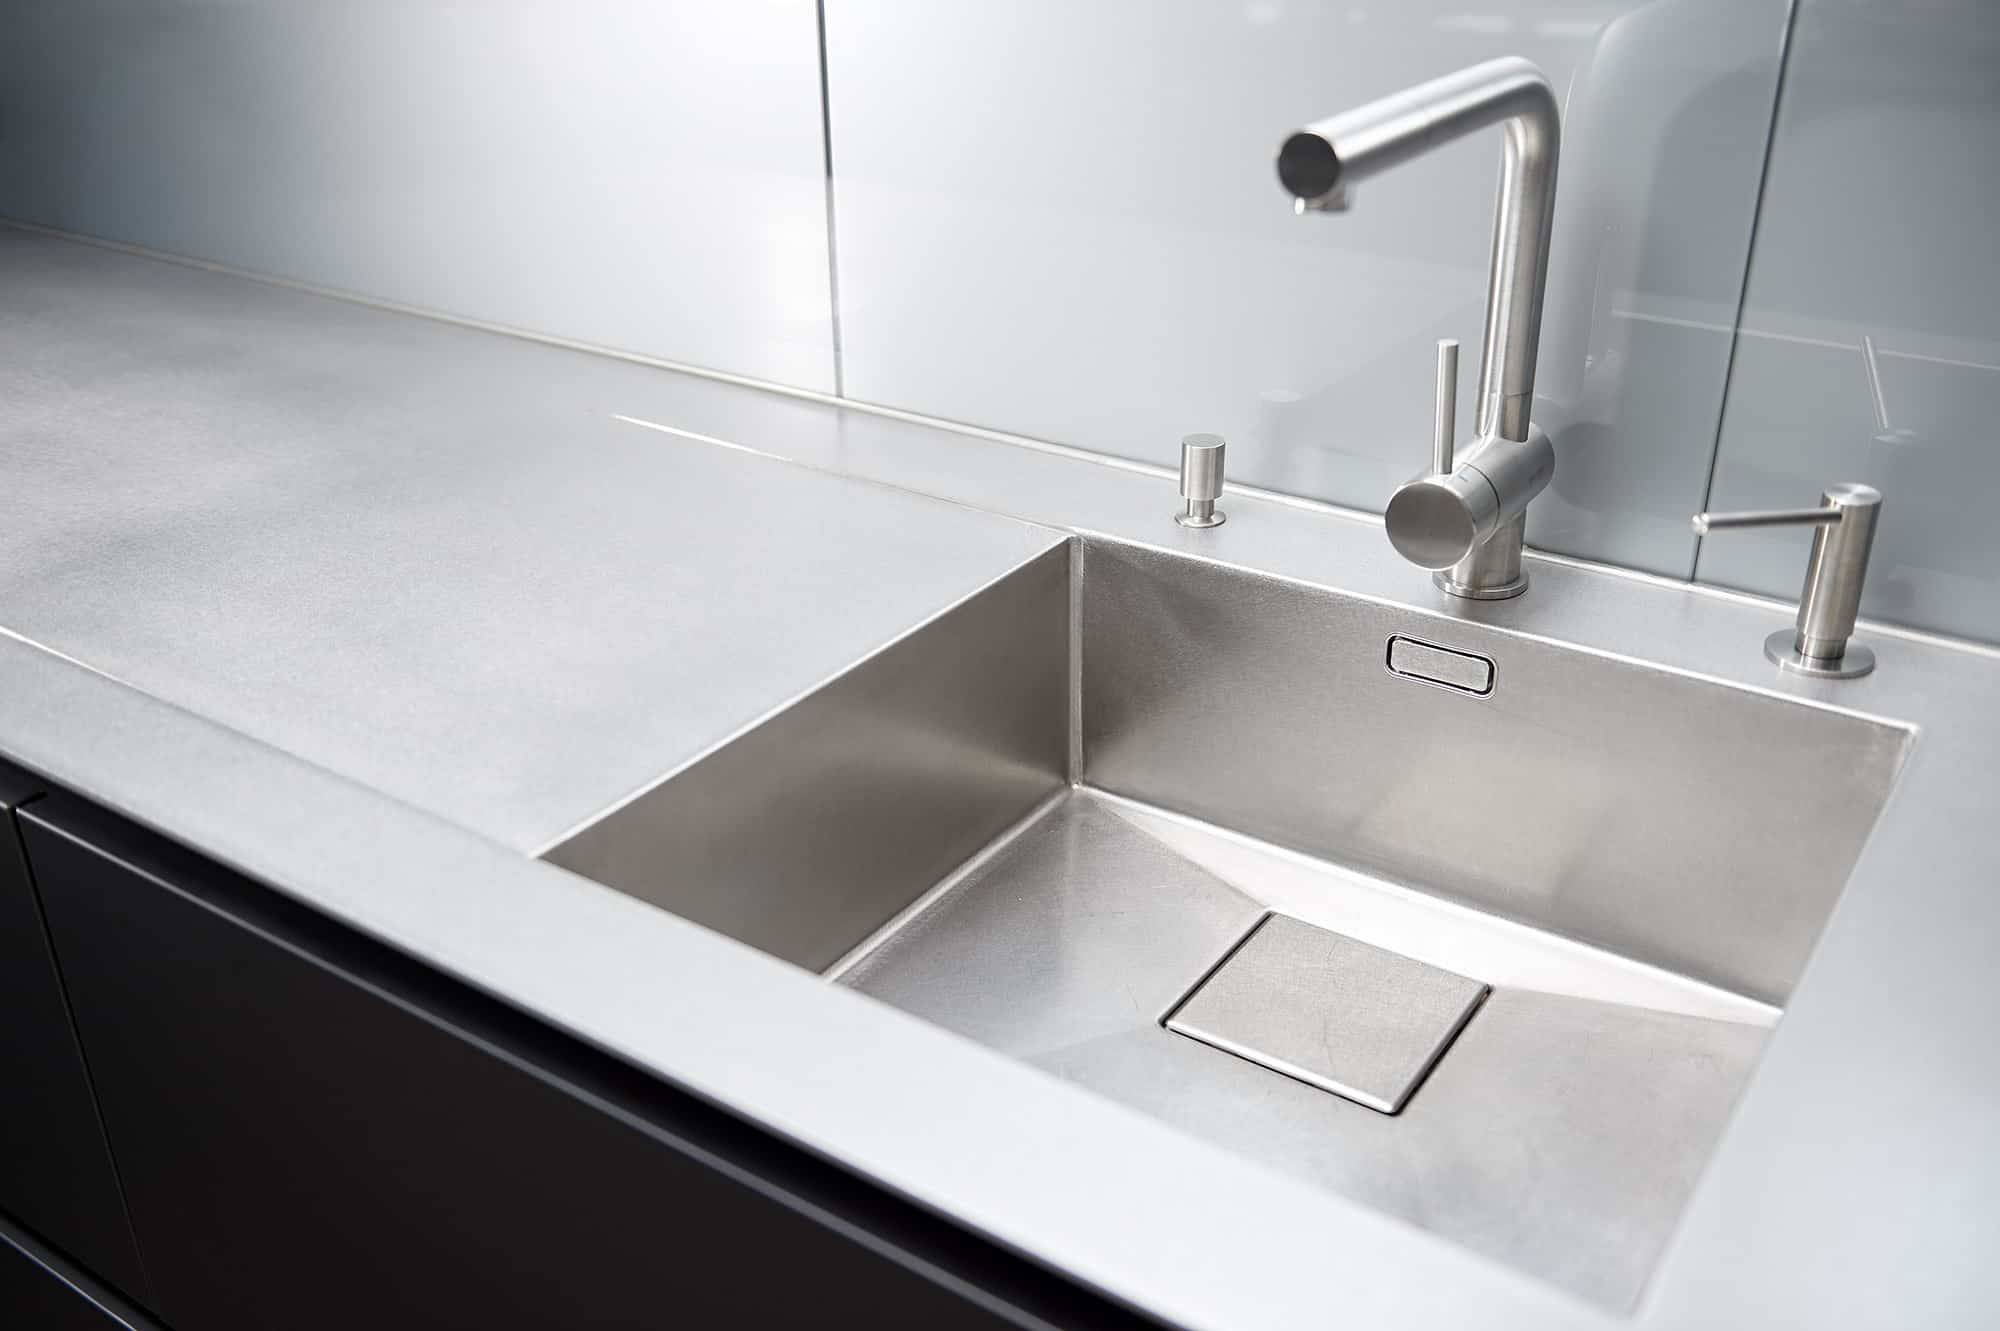 Hot Rolled stainless steel worktop with integrated sink